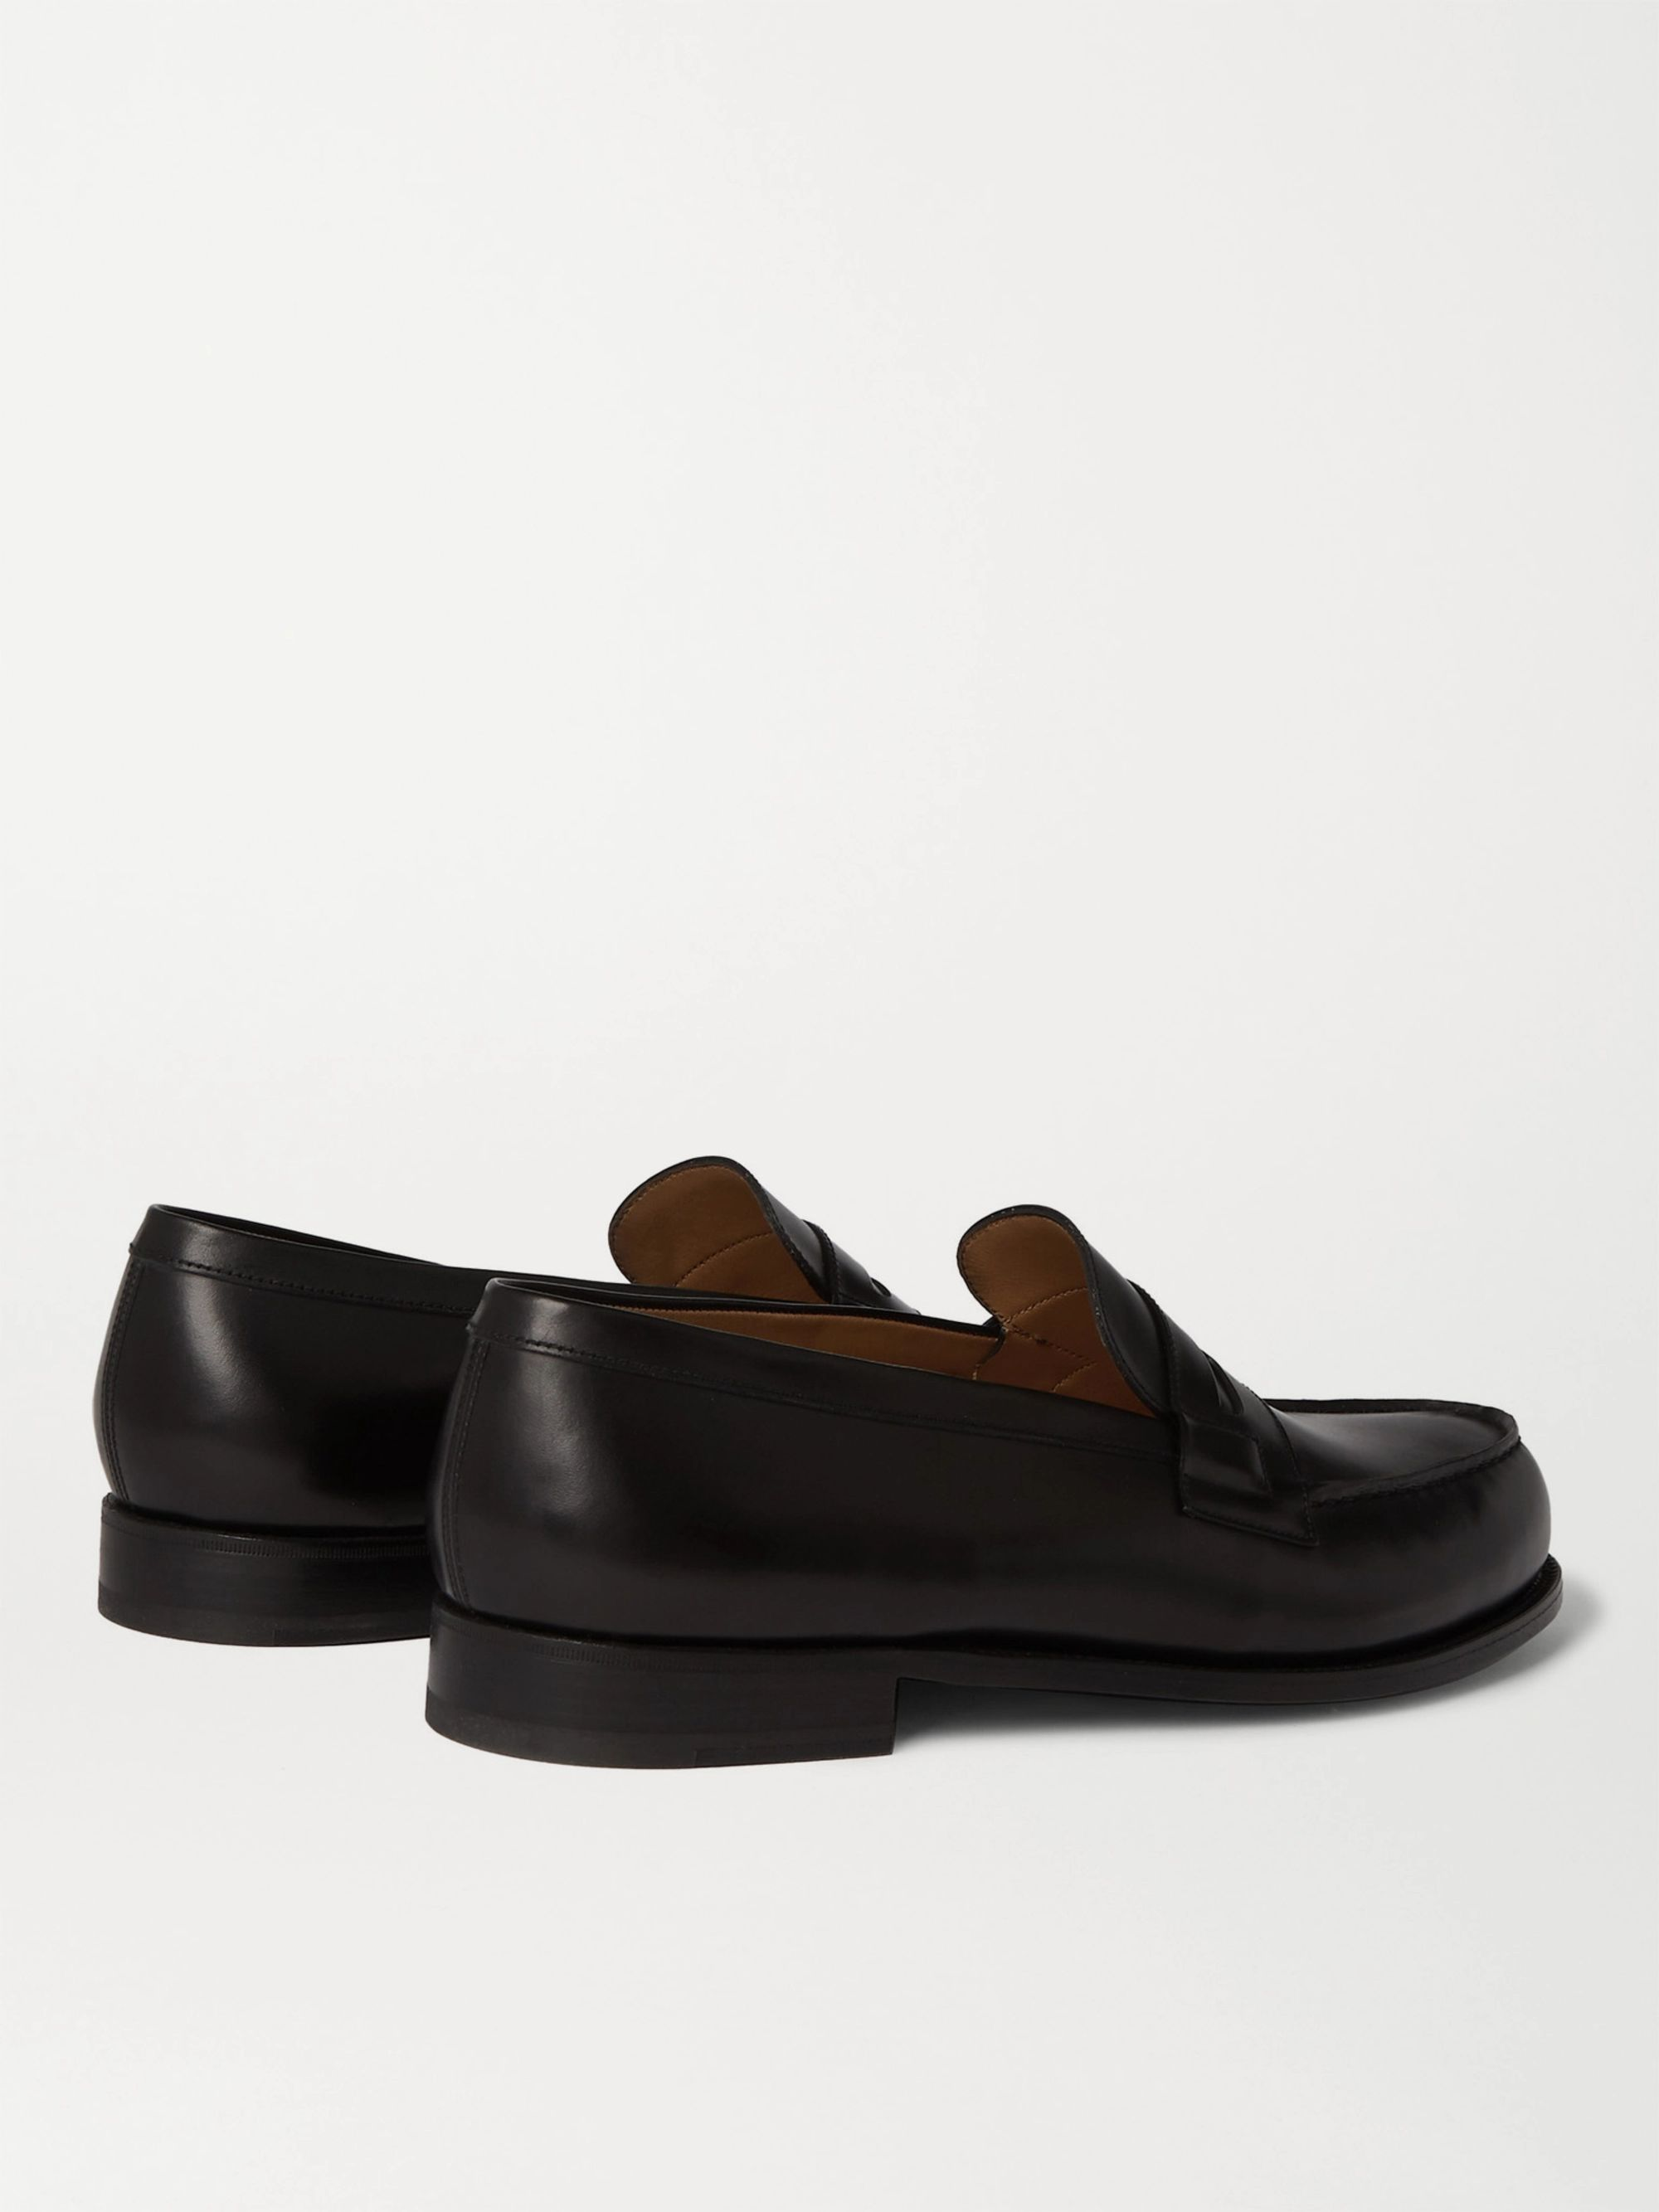 Black 180 Moccasin Leather Loafers | J.m. Weston